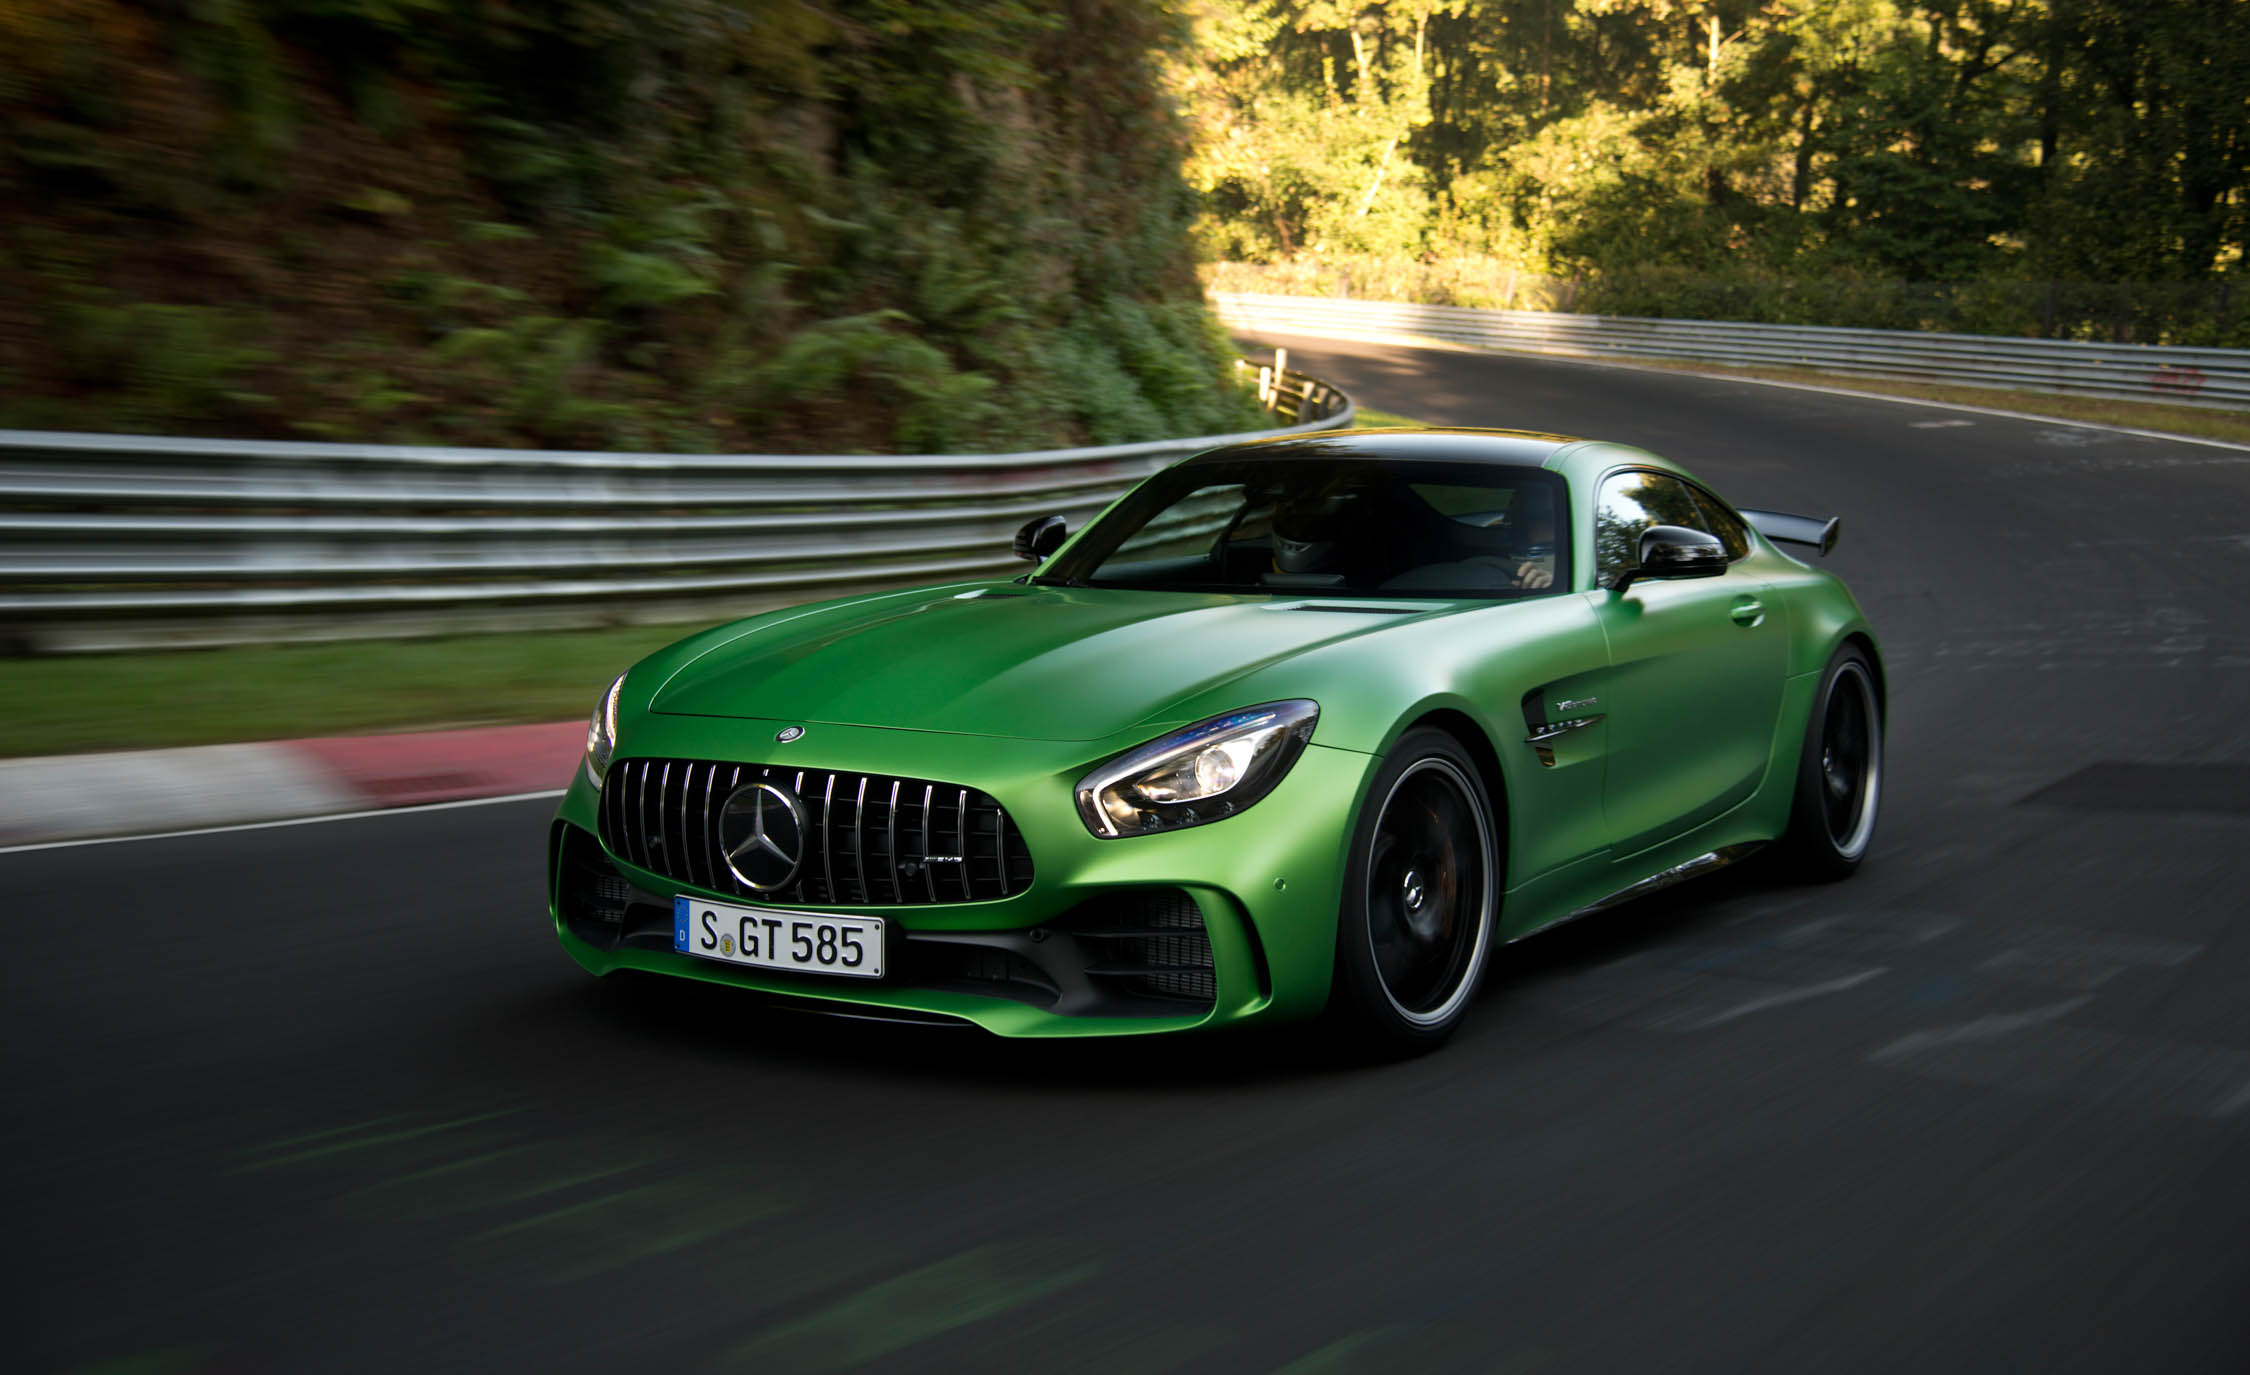 2017 mercedes amg gt r cars exclusive videos and photos updates. Black Bedroom Furniture Sets. Home Design Ideas